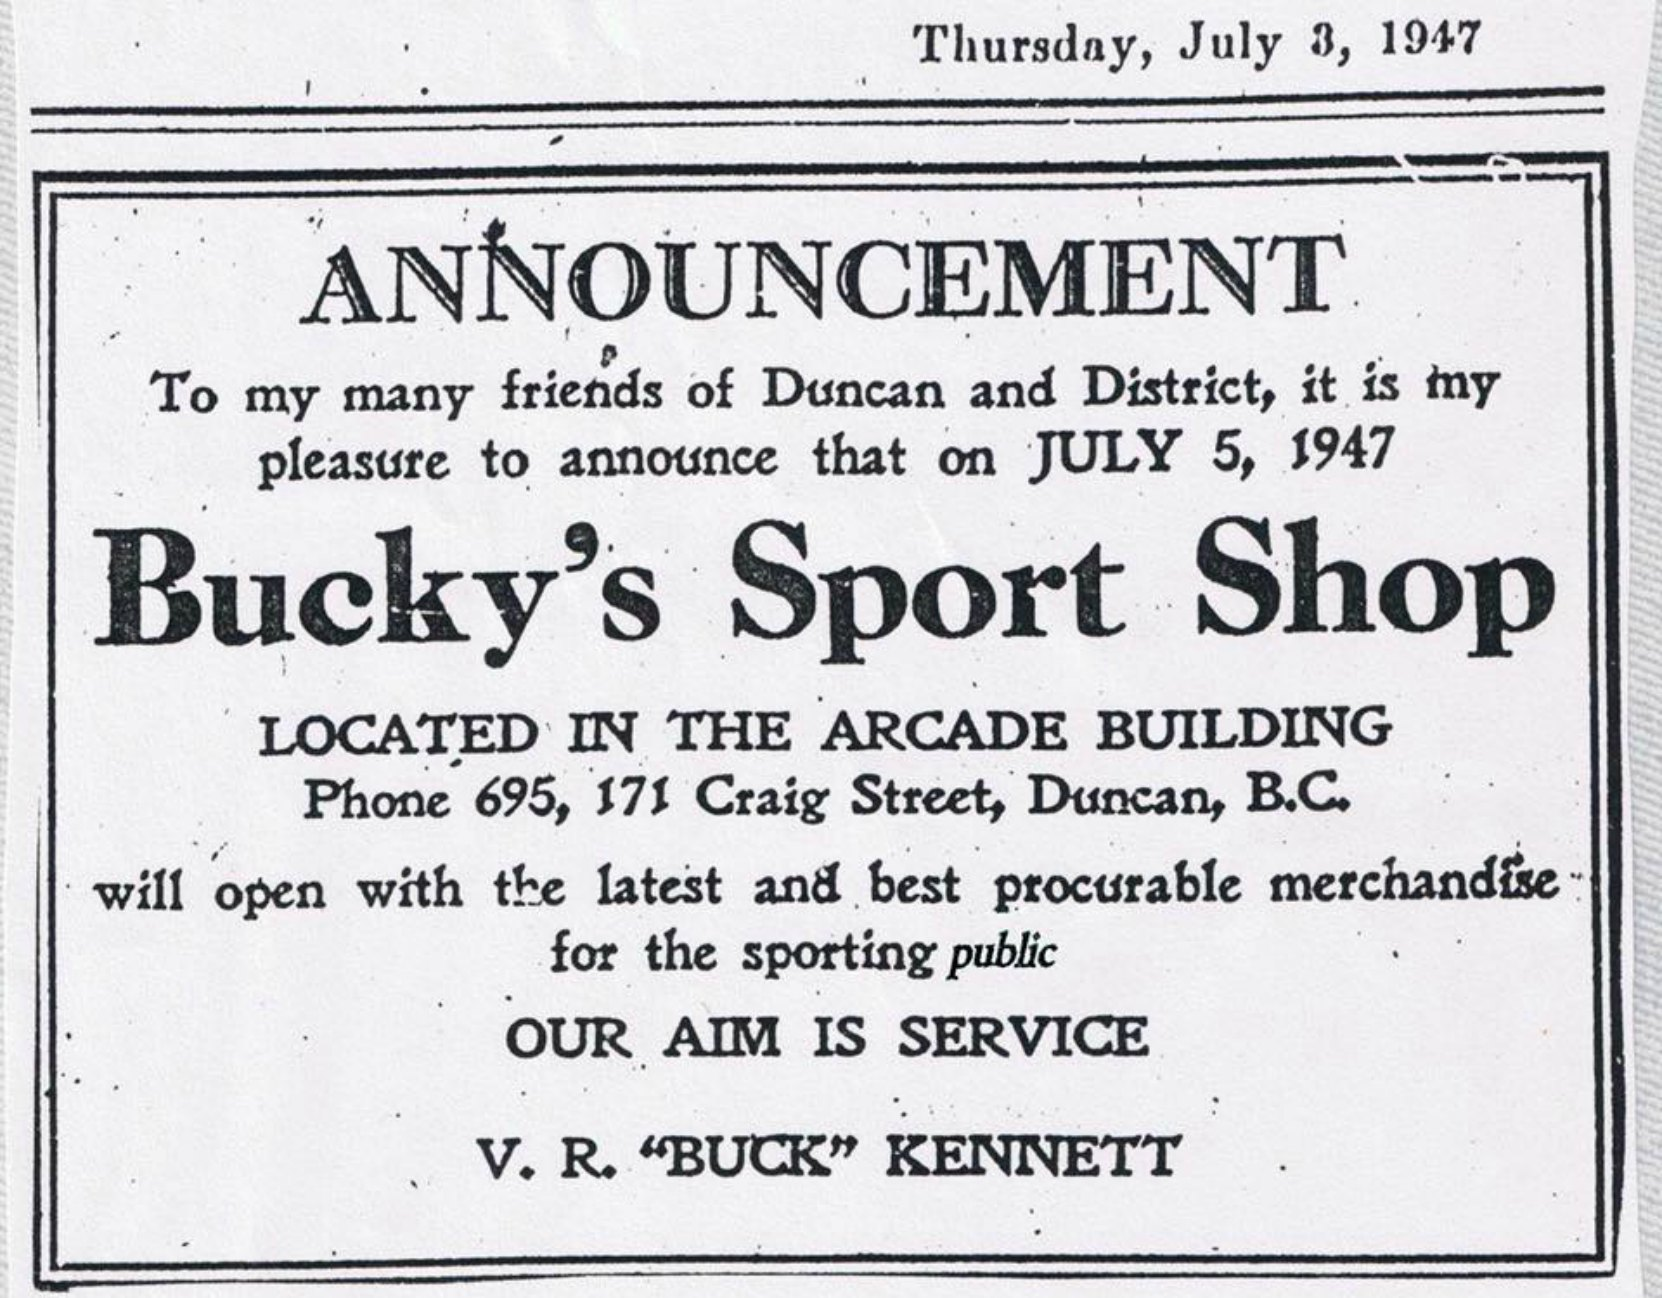 1947 advertisement in the Cowichan Leader the opening of Bucky's Sport Shop. (Duncan Sightseeing collection)